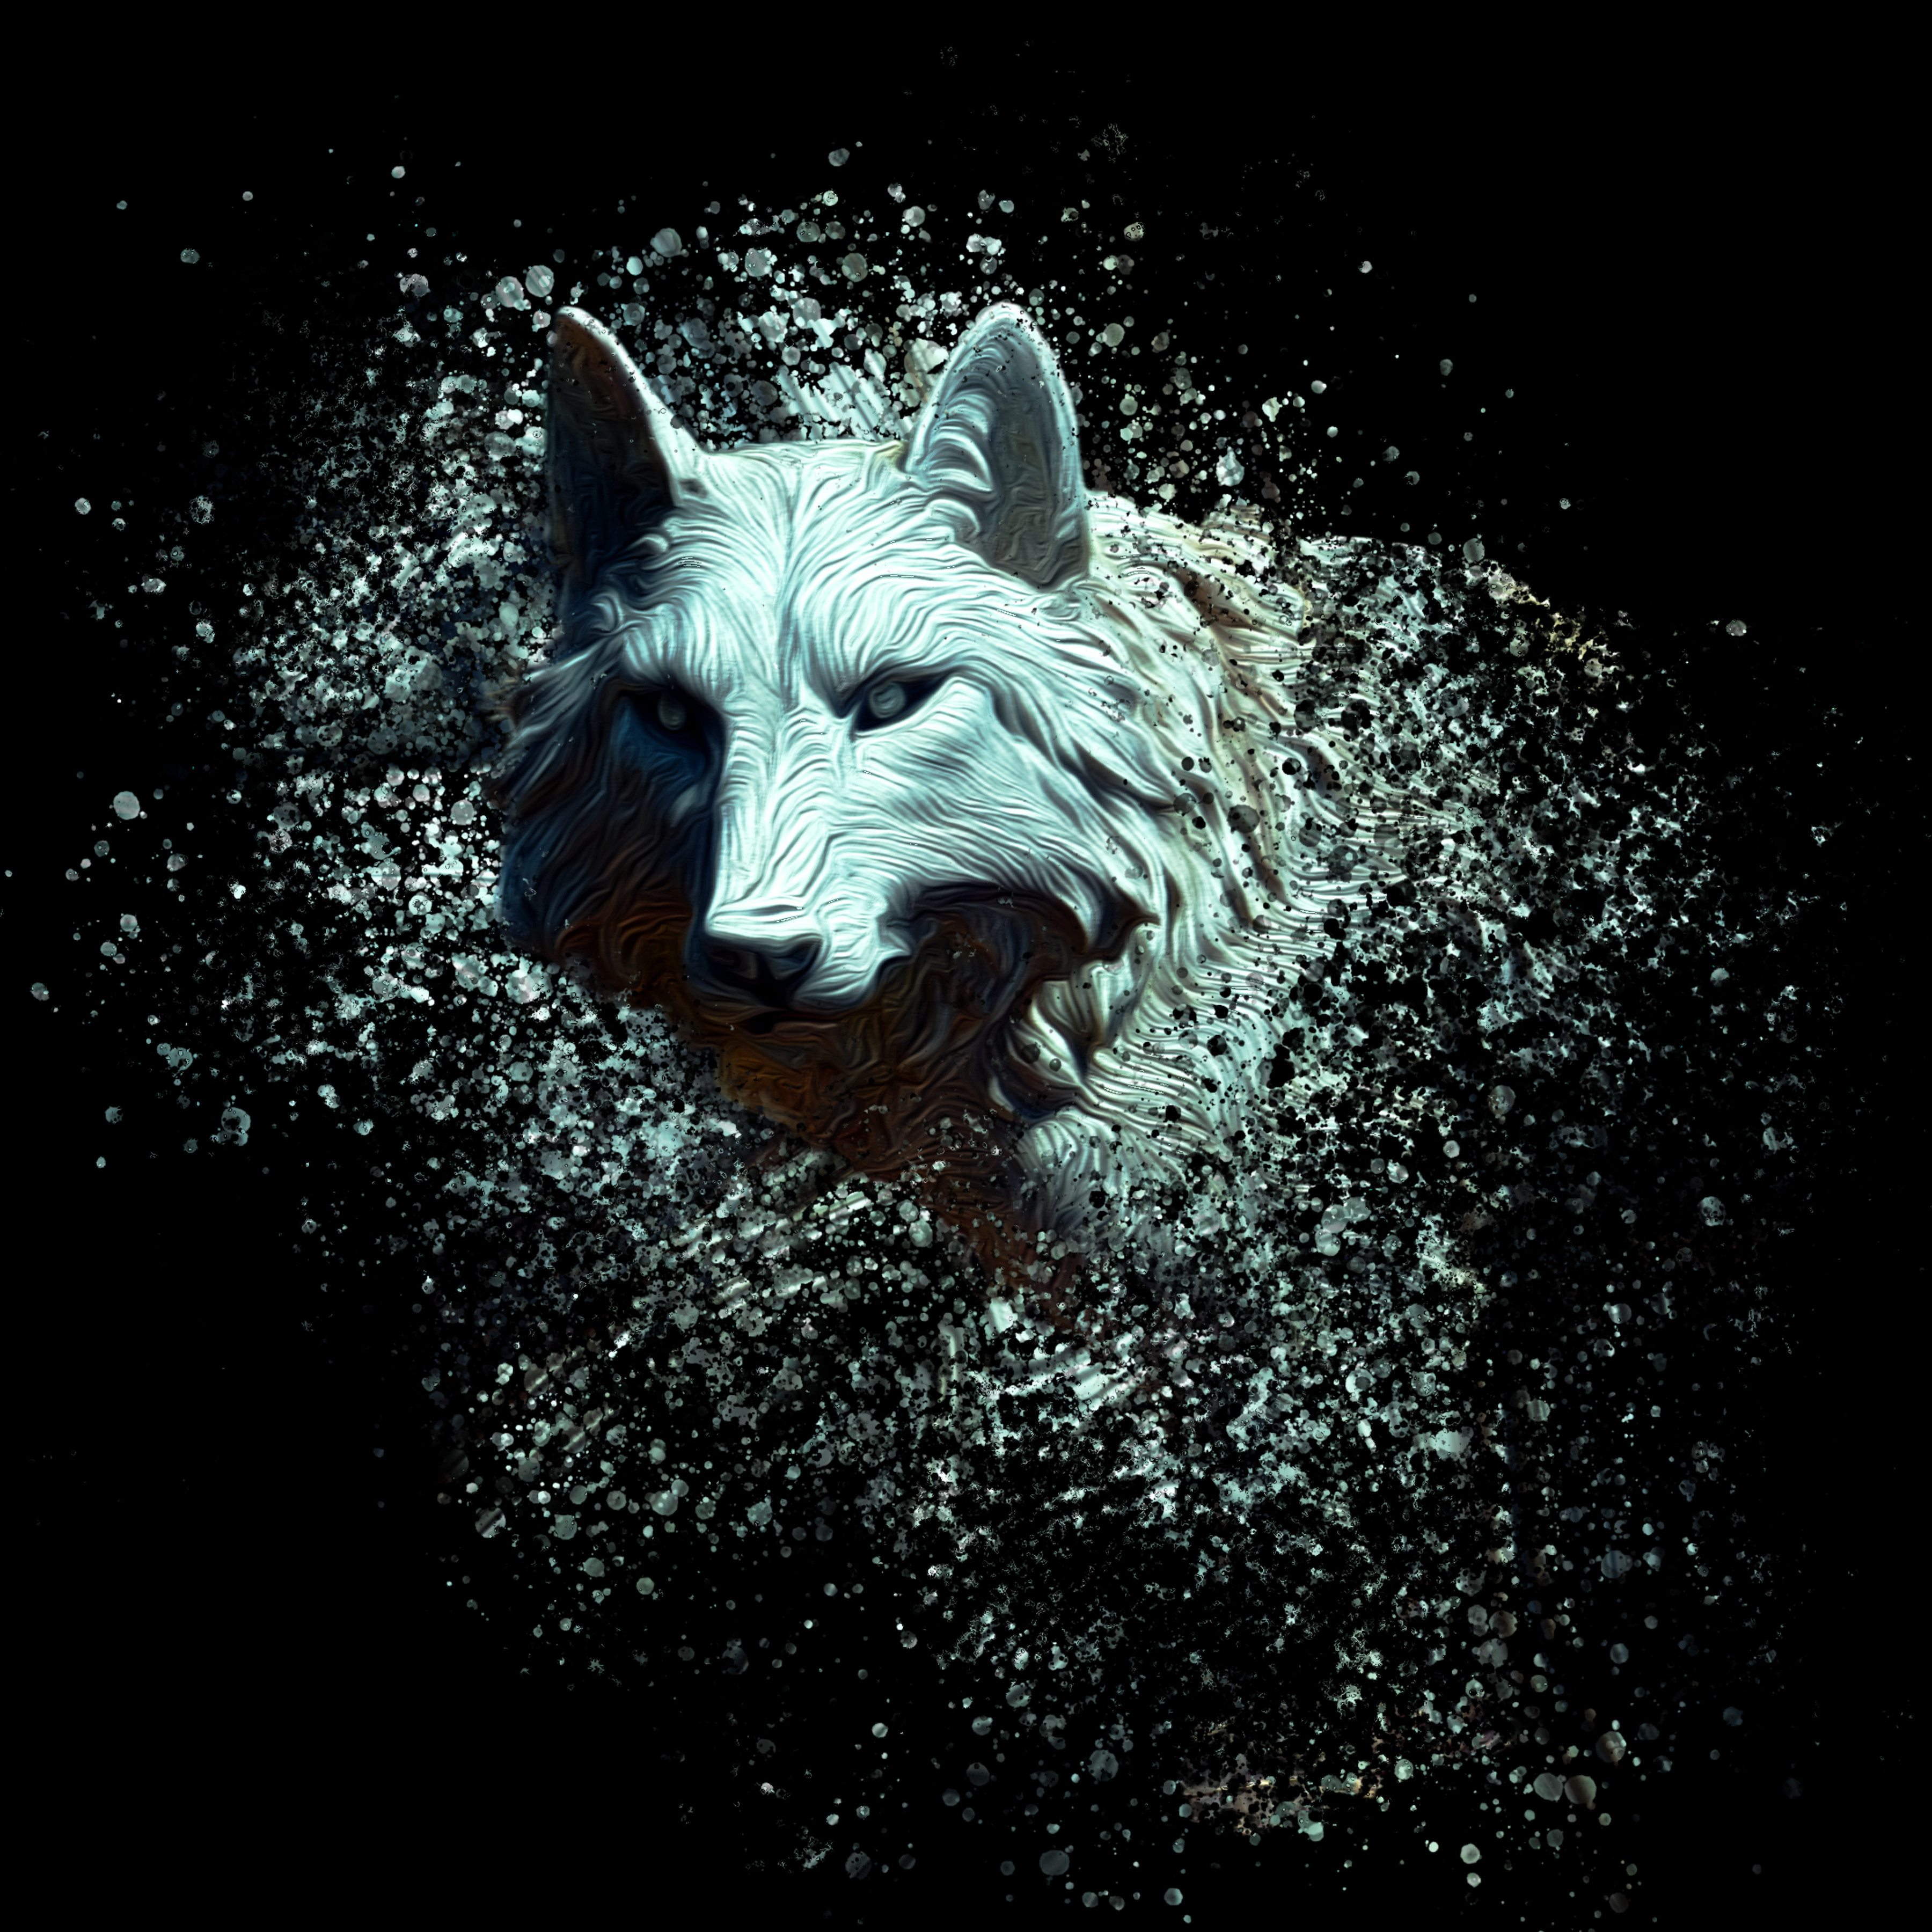 Of the white wolf